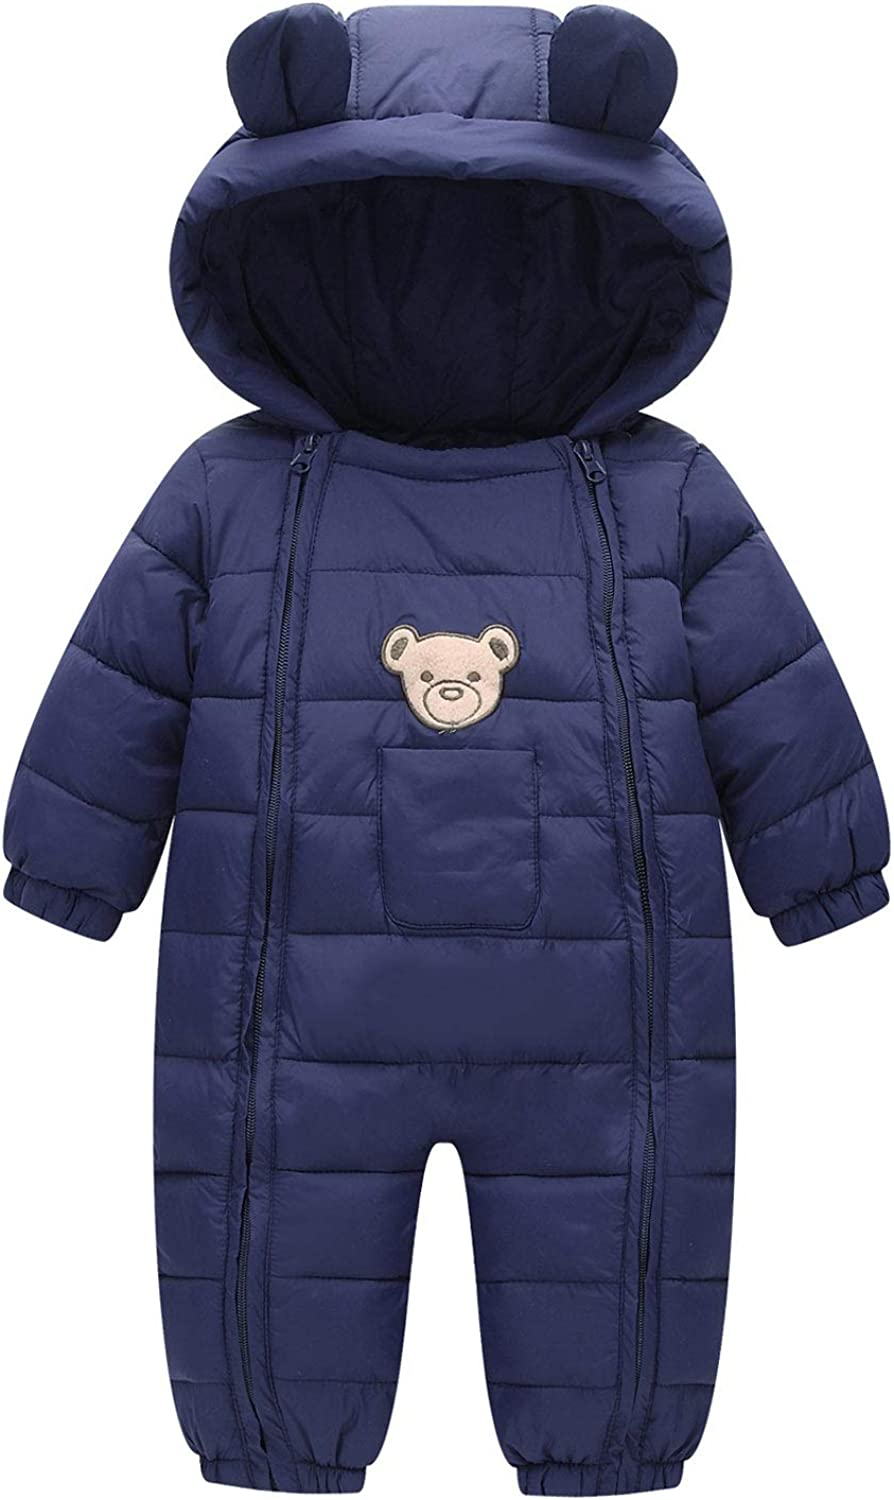 Happy Cherry Baby Winter Romper Thermal Snowsuit Jumpsuit Cute Hooded Coat 3-24 Months